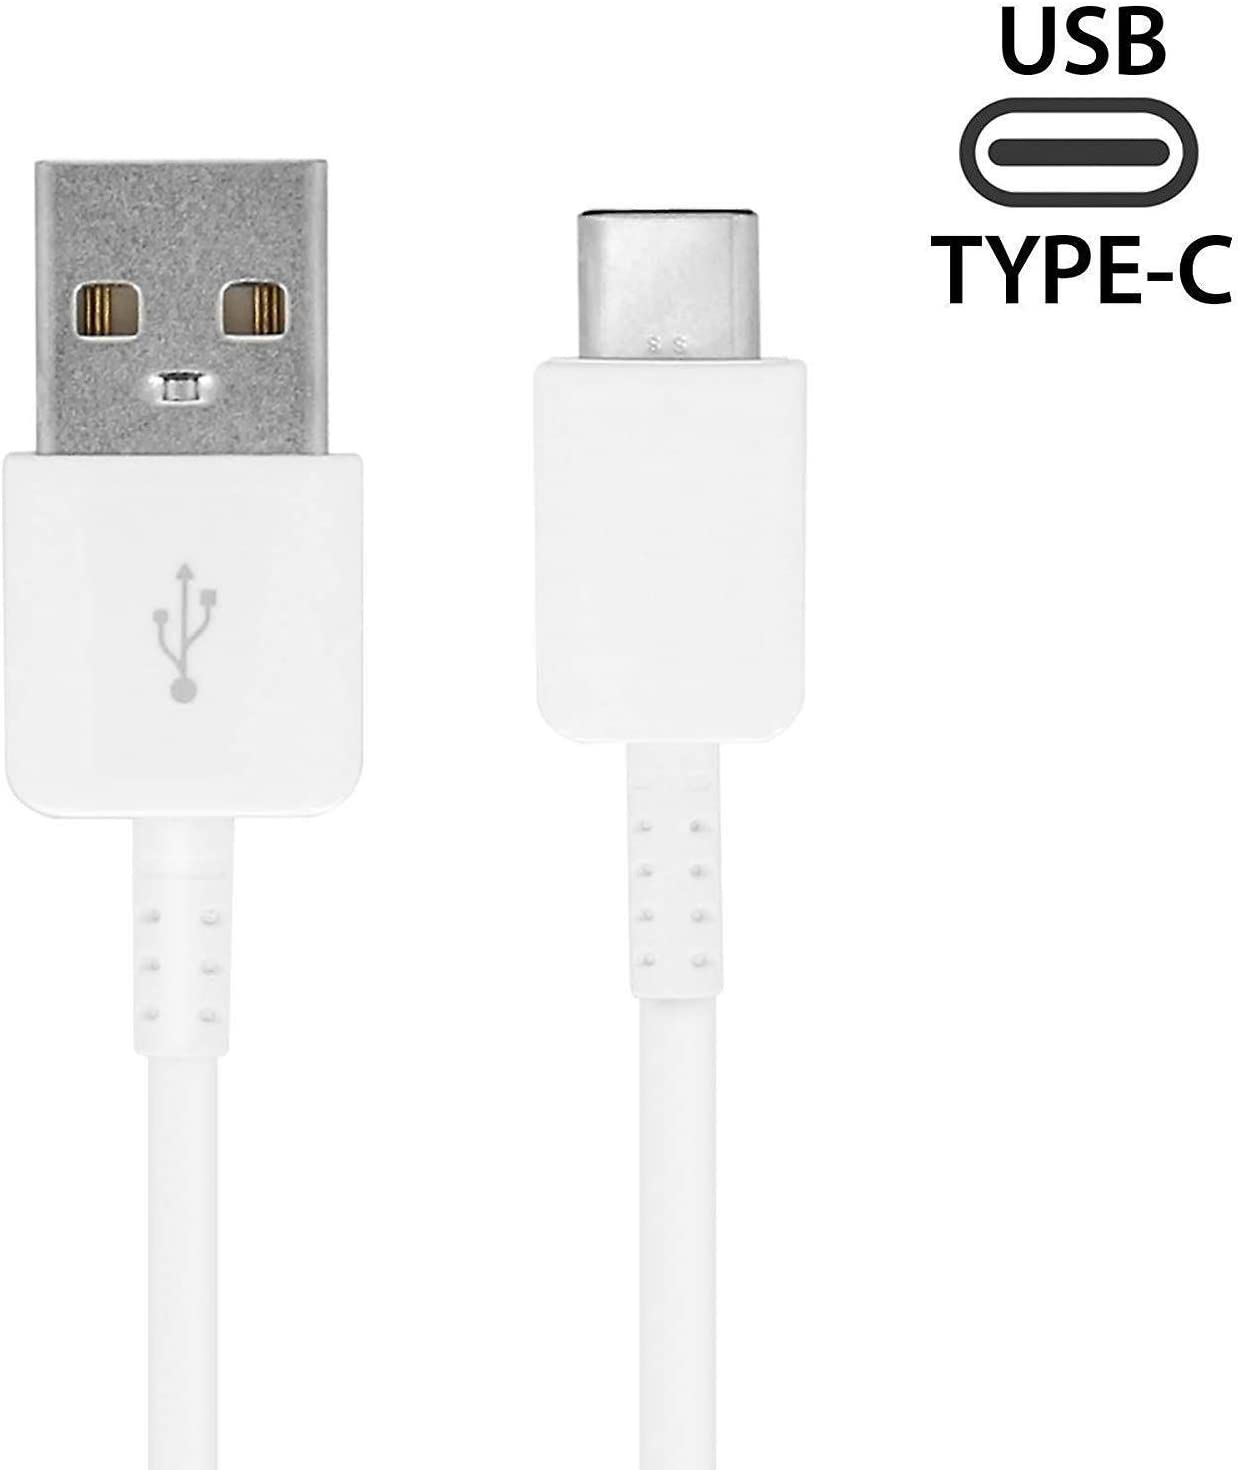 PRO USB-C Charging Transfer Cable for Samsung SM-G981U! White 3.3Ft